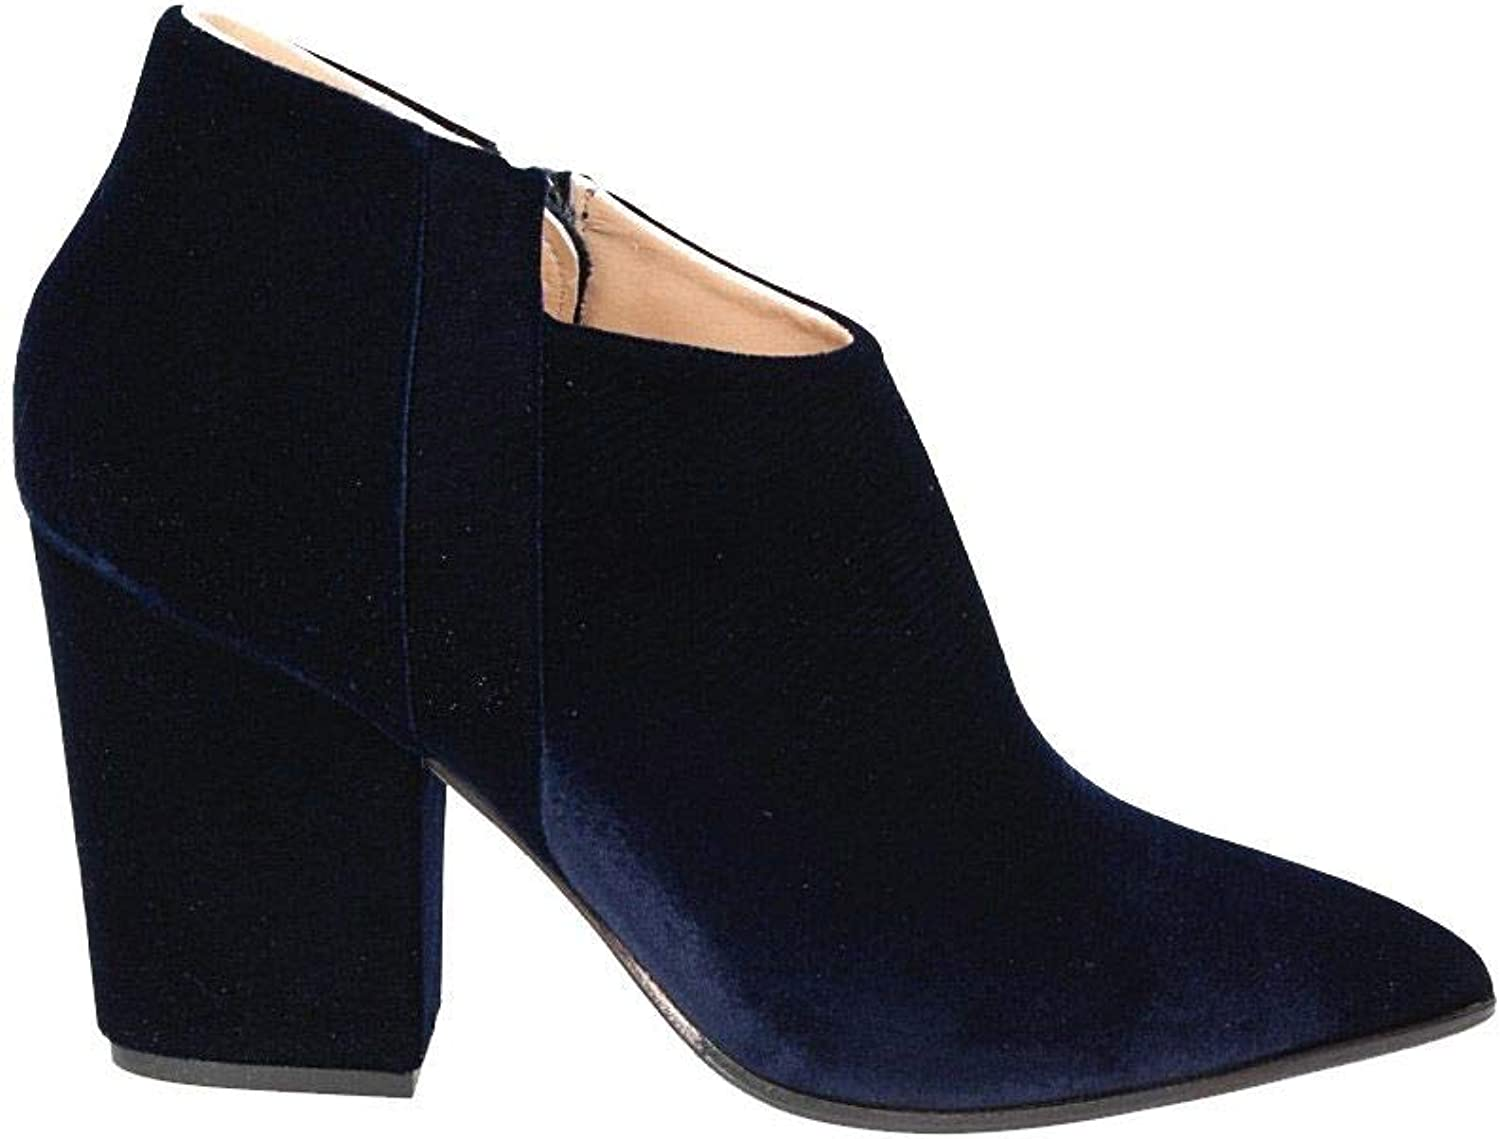 THE SELLER Women's 5280BLACK bluee Suede Ankle Boots